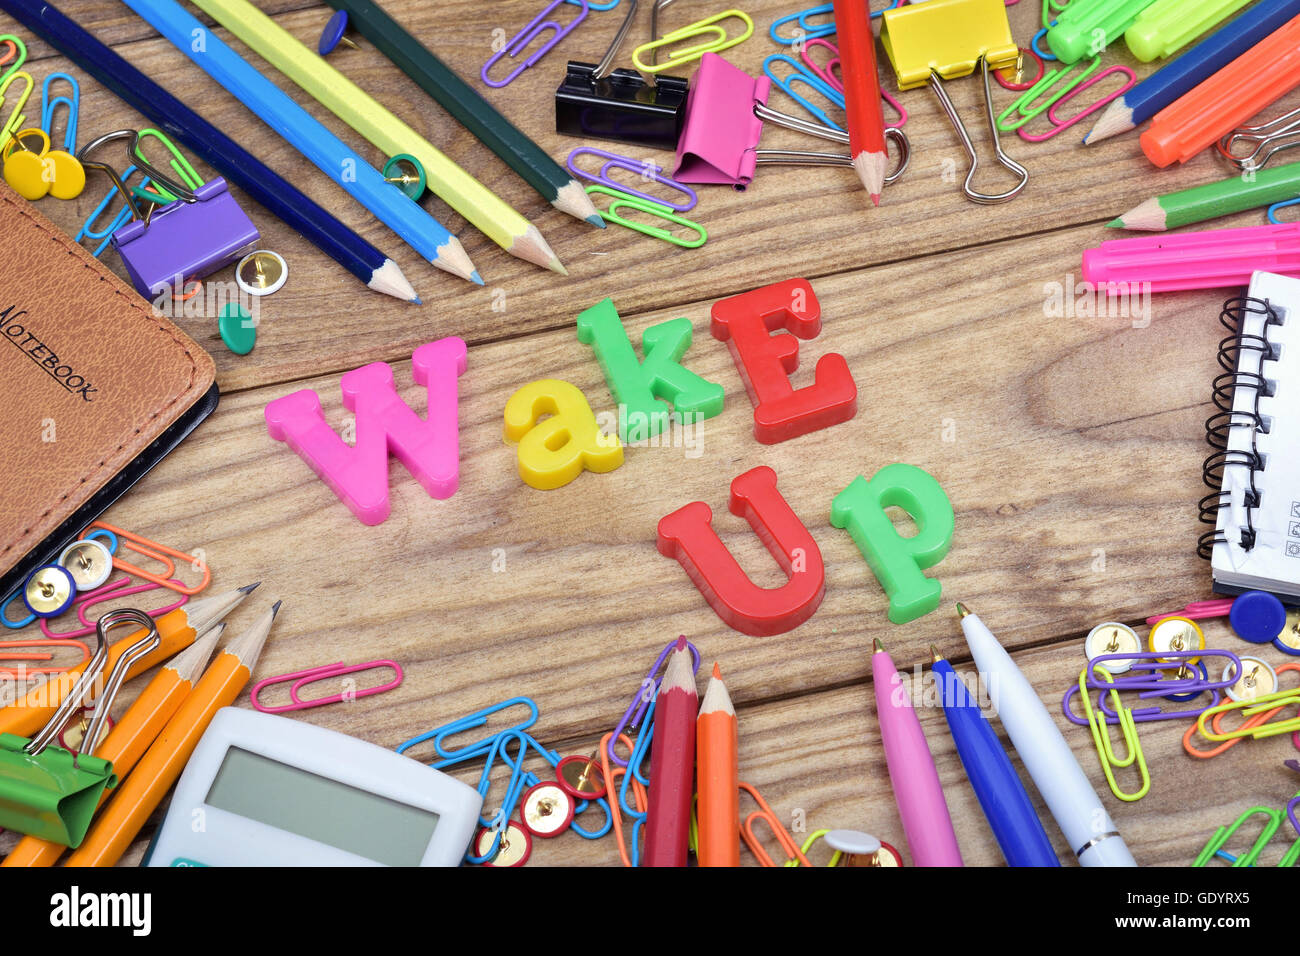 Wake up word and office tools on wooden table - Stock Image